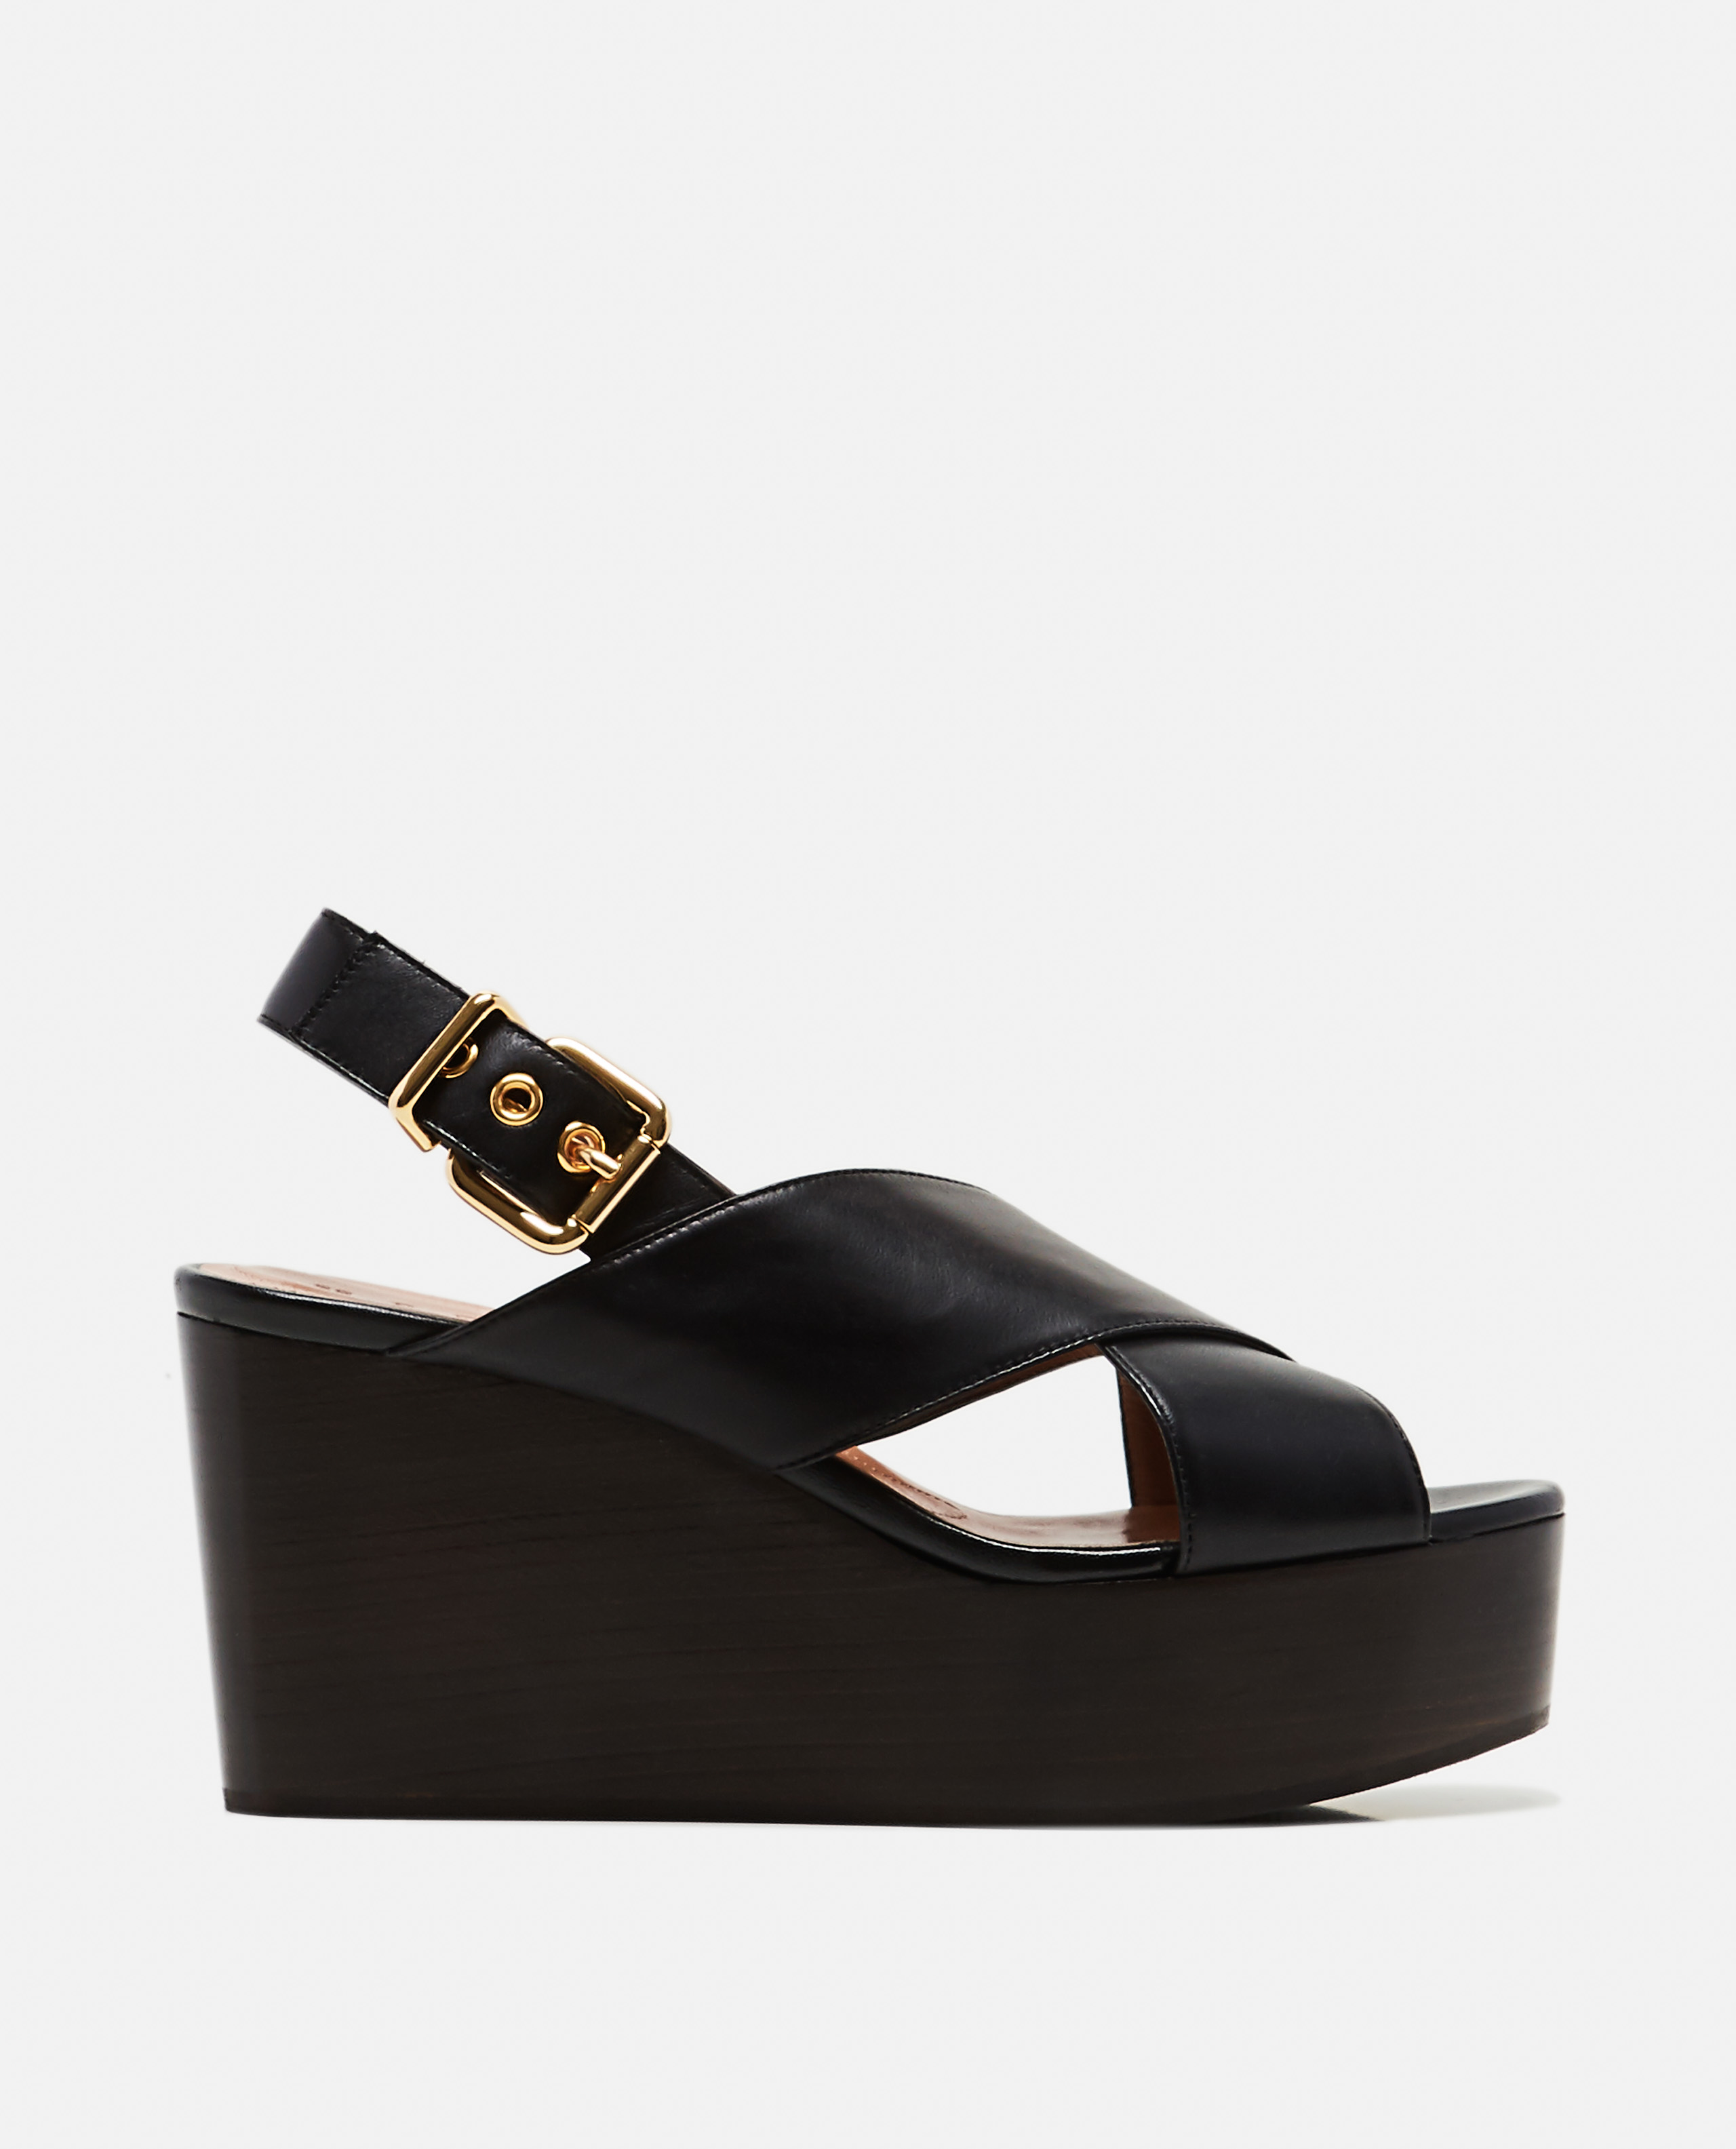 Leather sandals with wedge